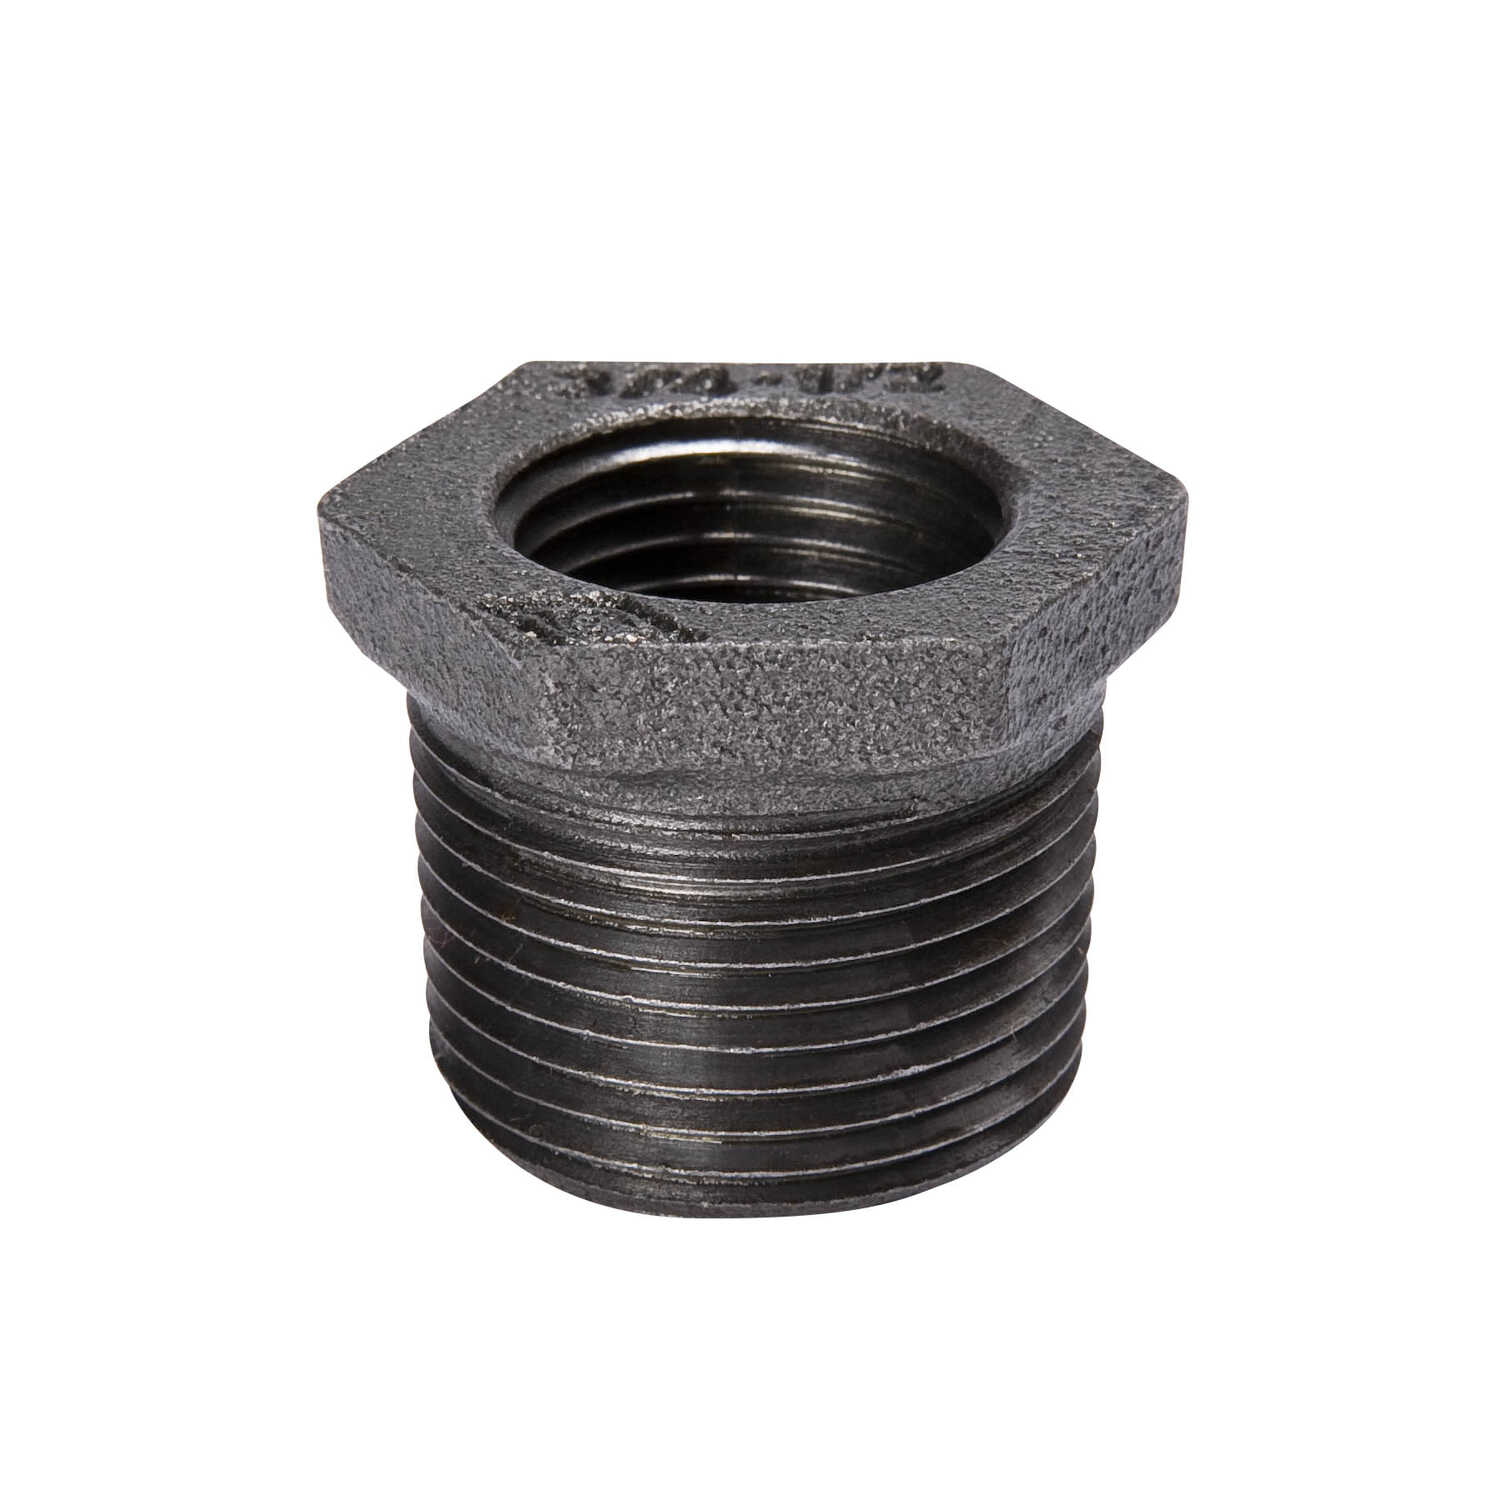 B & K  Southland  3 in. FPT   x 1-1/2 in. Dia. FPT  Black  Malleable Iron  Hex Bushing